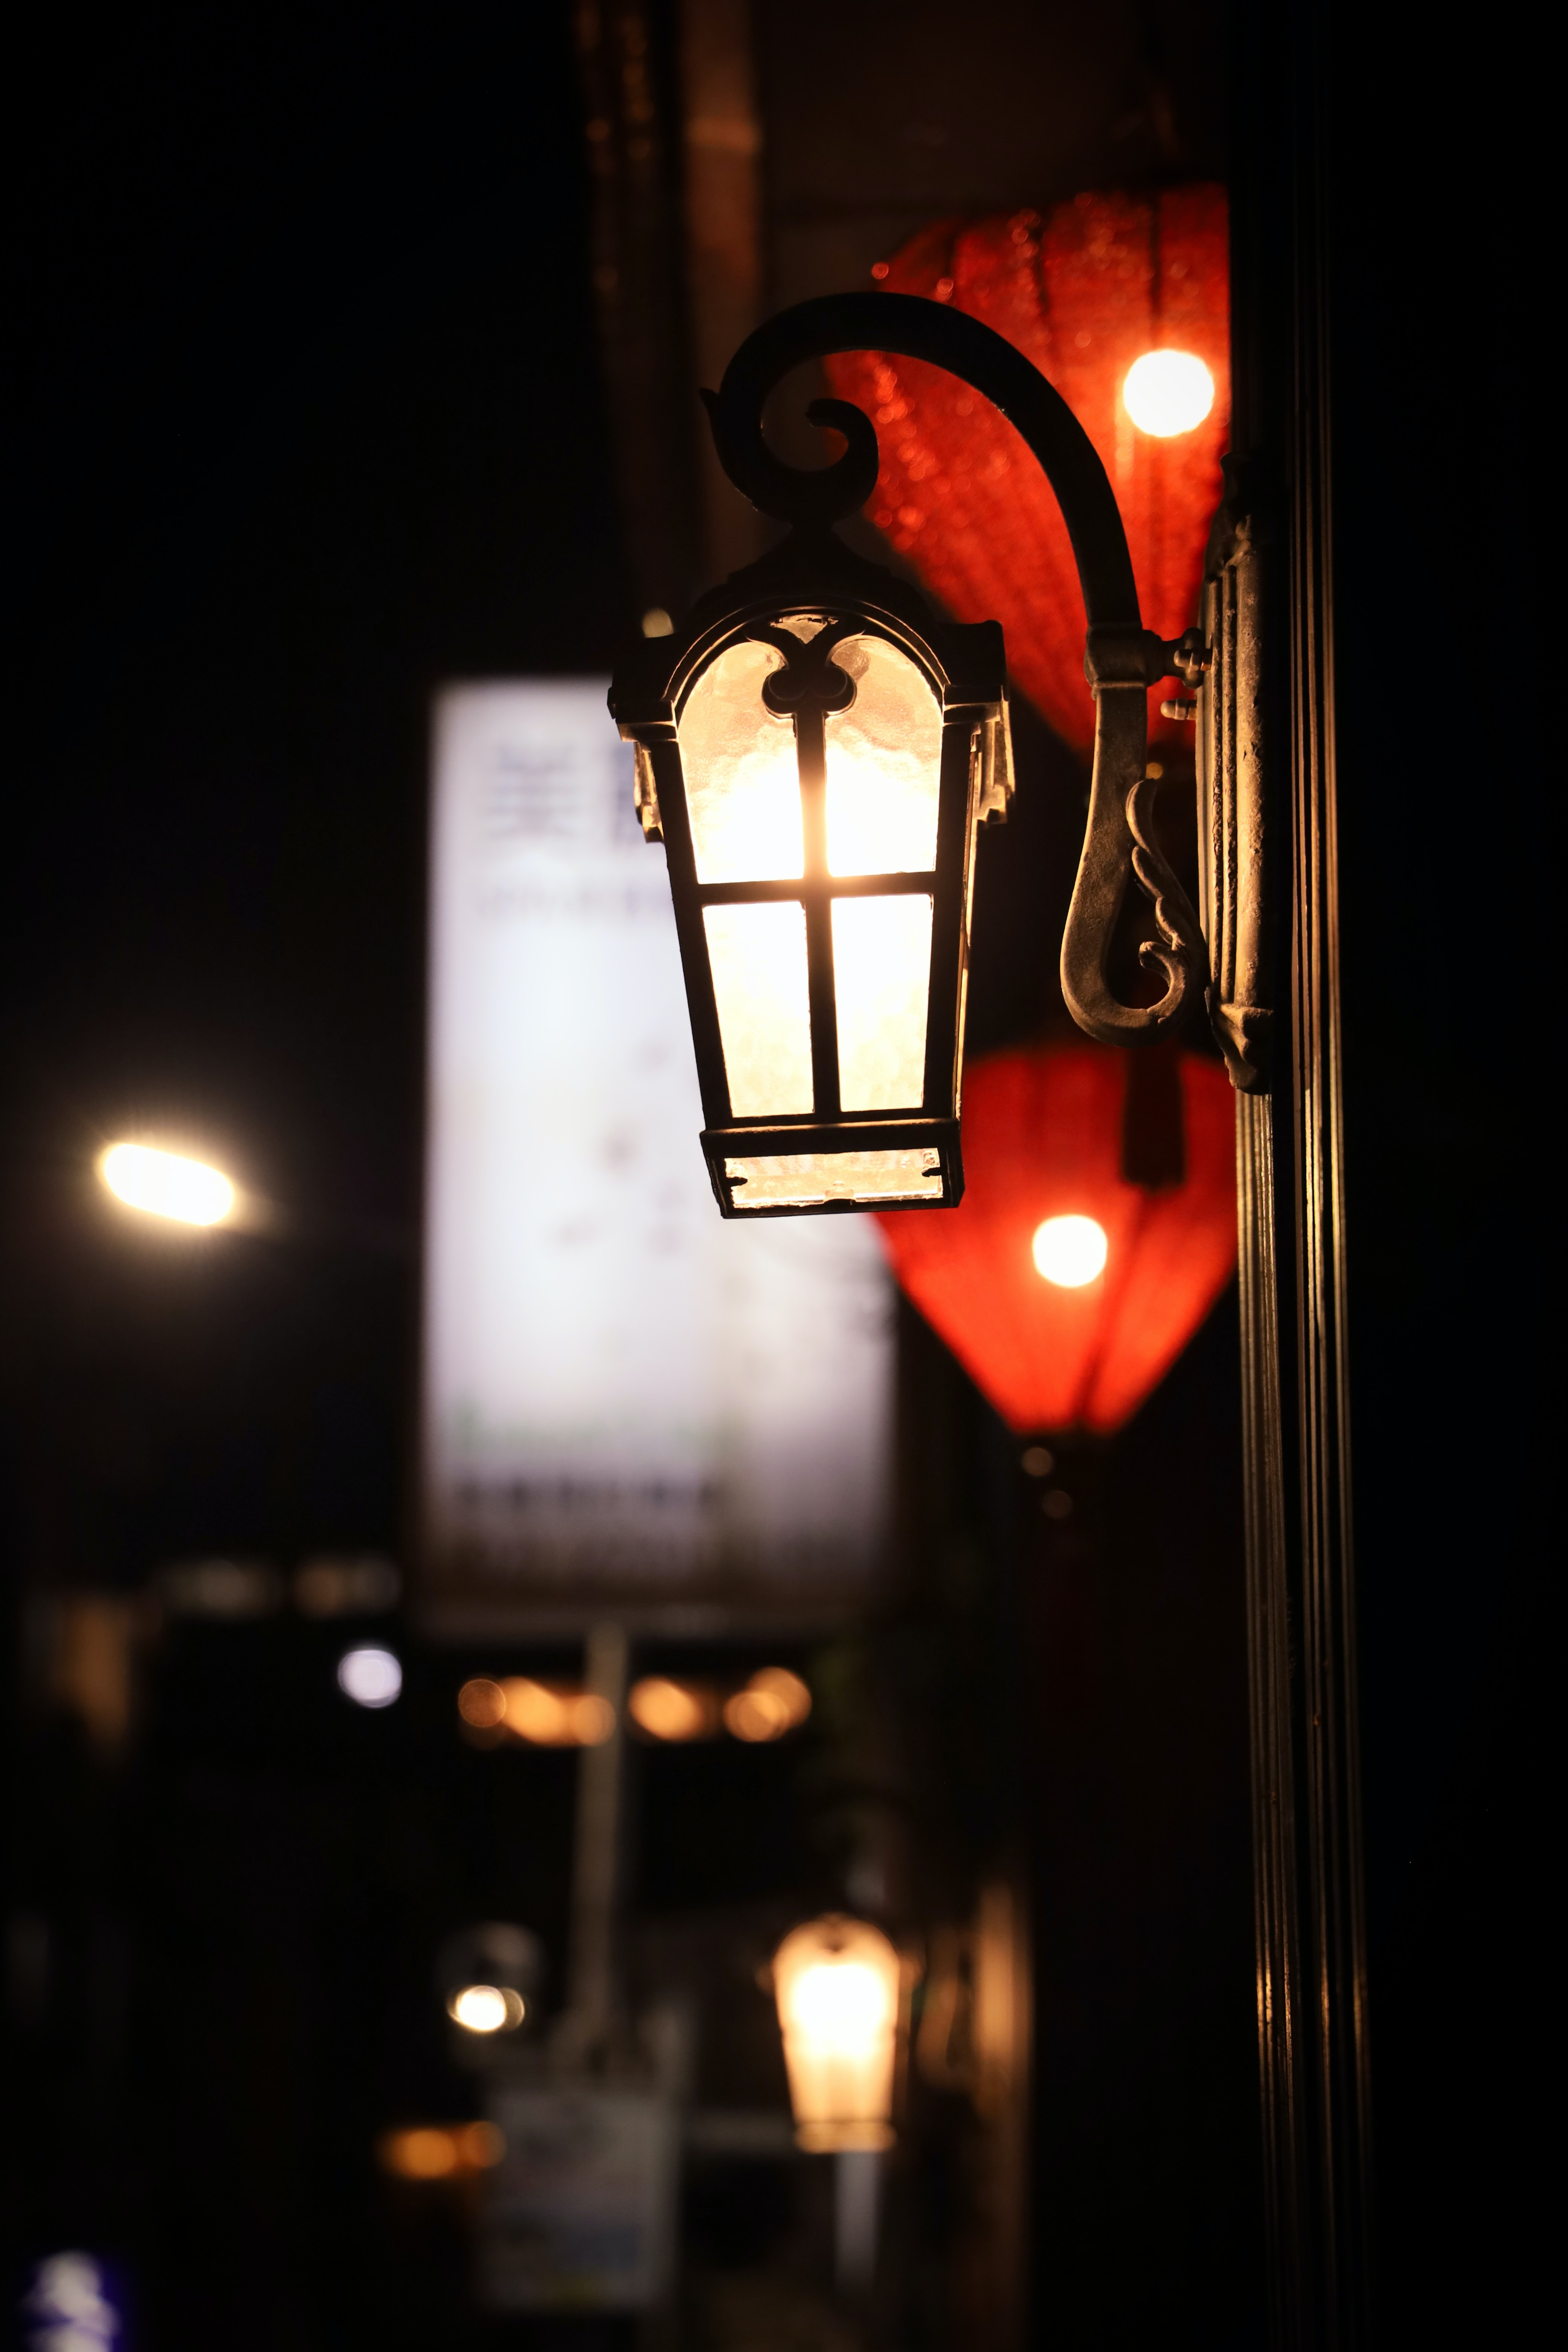 138380 download wallpaper Miscellanea, Miscellaneous, Lamp, Lantern, Glow, Street, Blur, Smooth screensavers and pictures for free